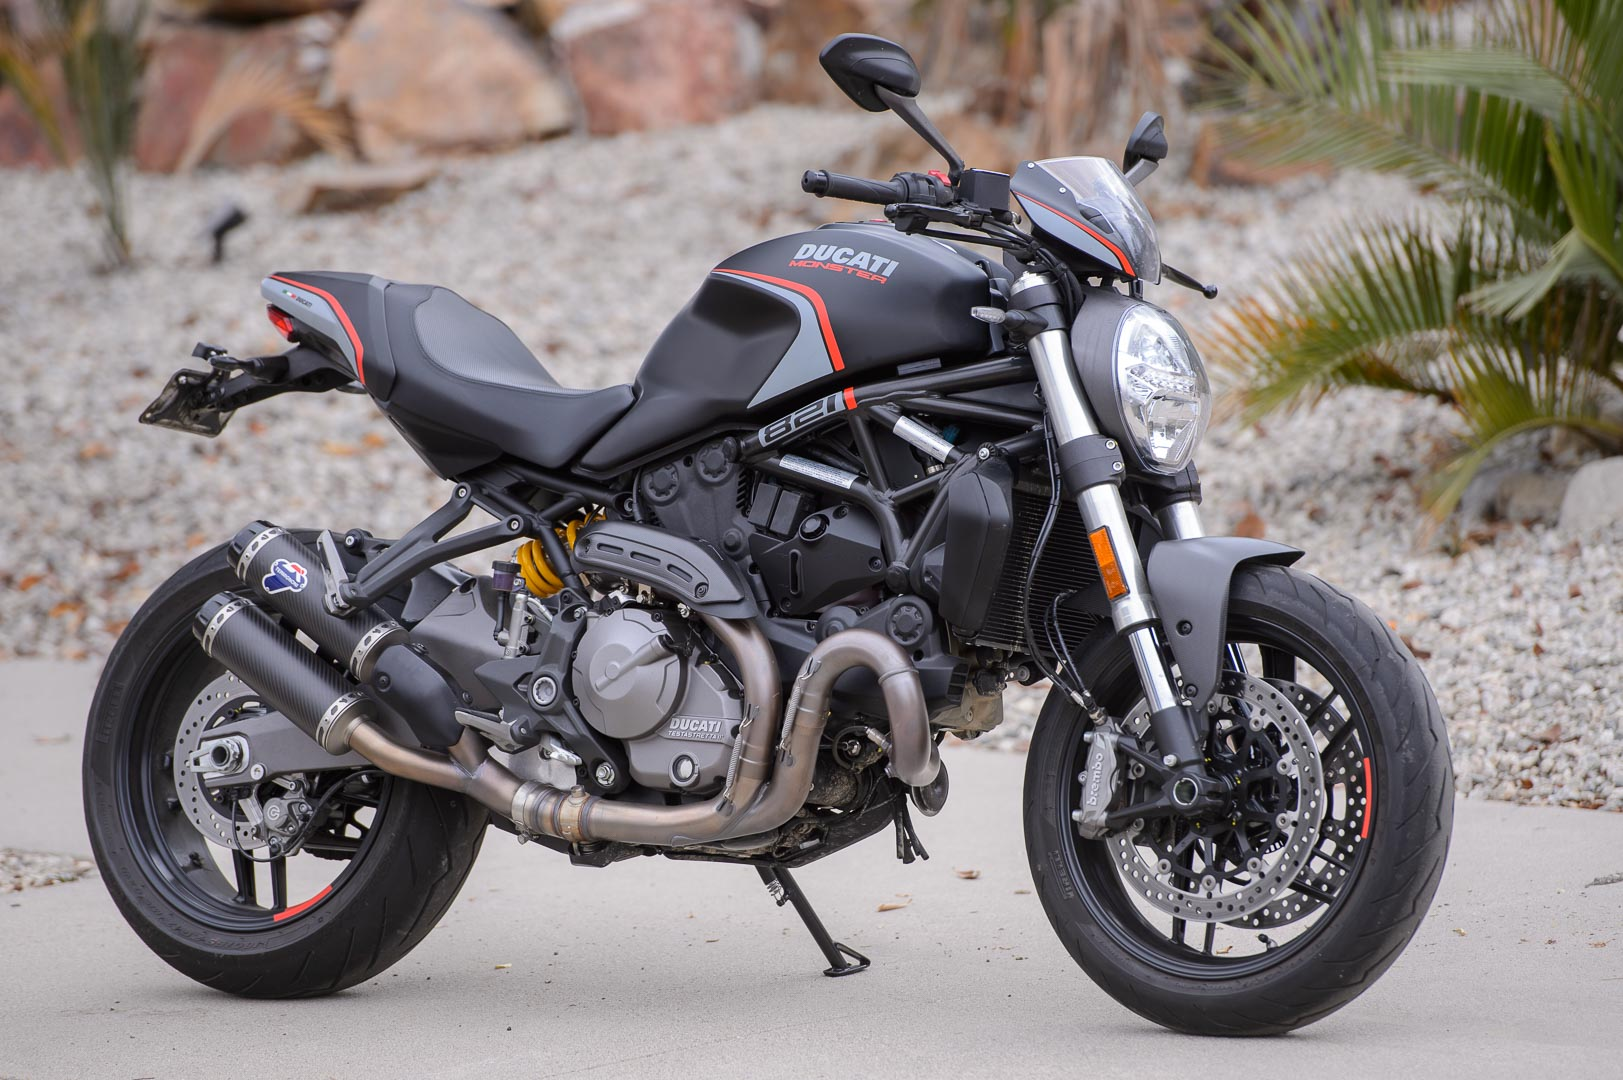 2020 Ducati Monster 821 Stealth Review: For Sale